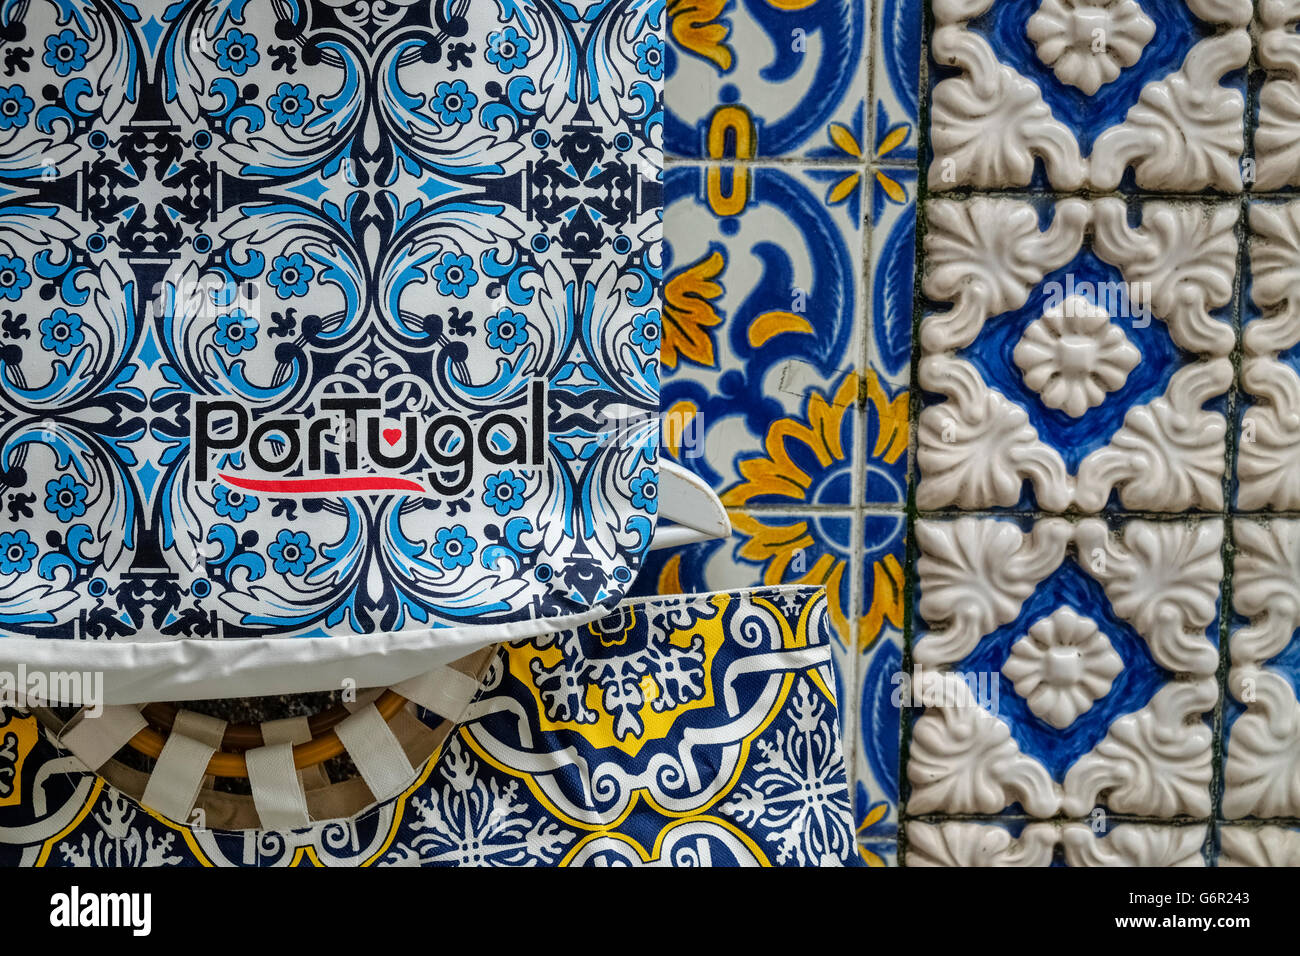 Portugal souvenir shop items displayed on a wall with for Azulejos de portugal